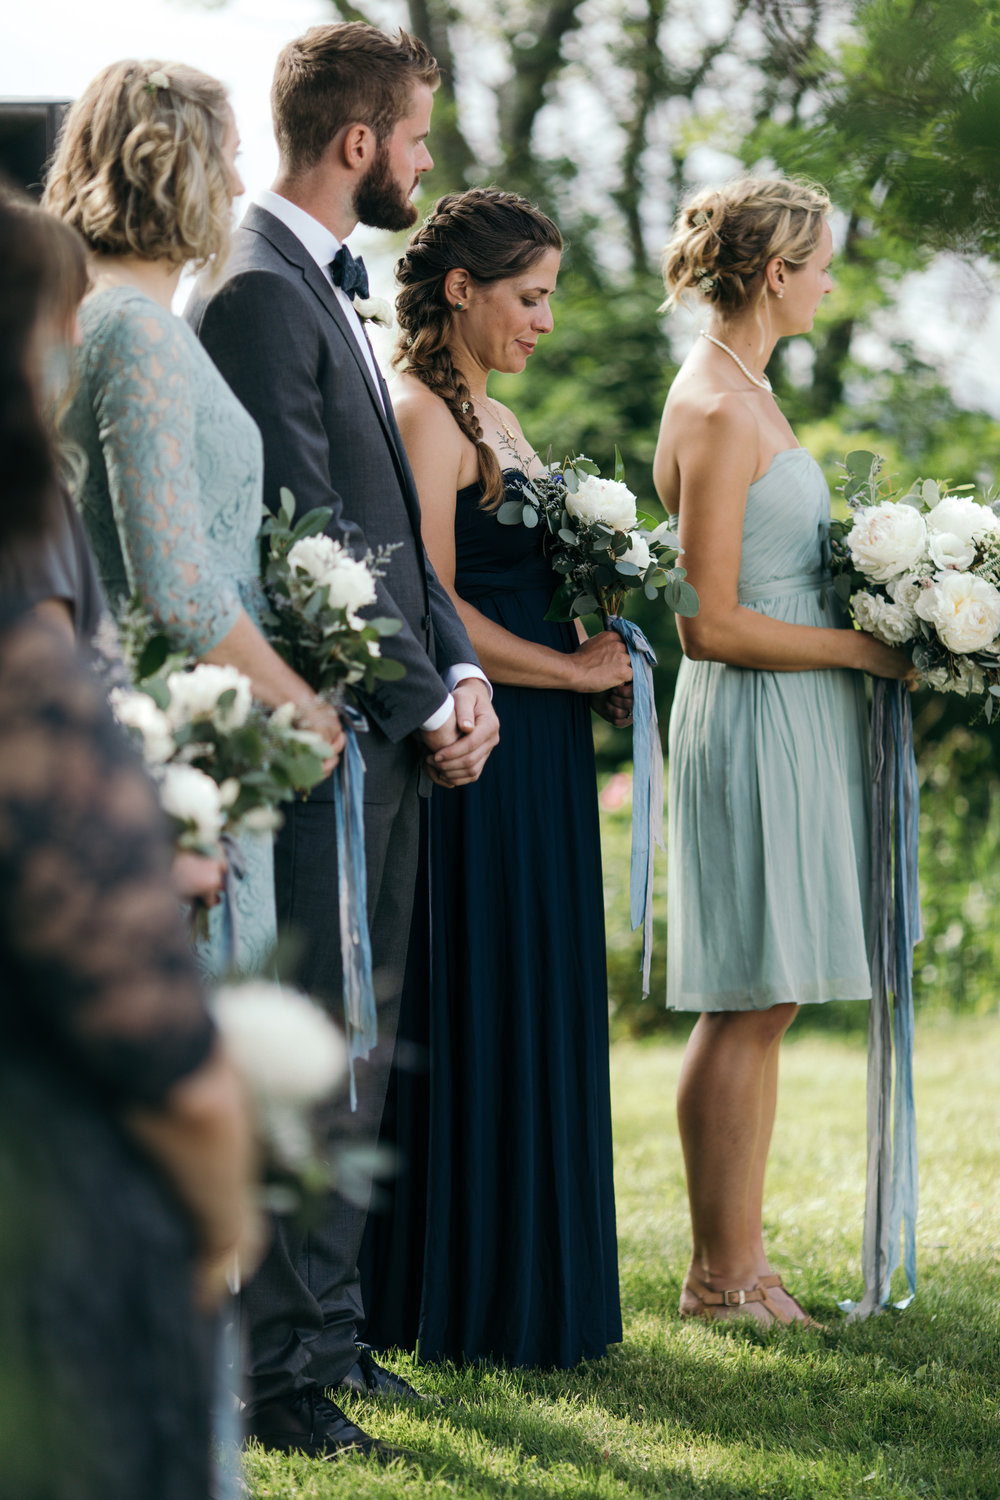 Watershed-Floral-Maine-Island-Wedding-Bridesmaid-Bouquets-3.jpg